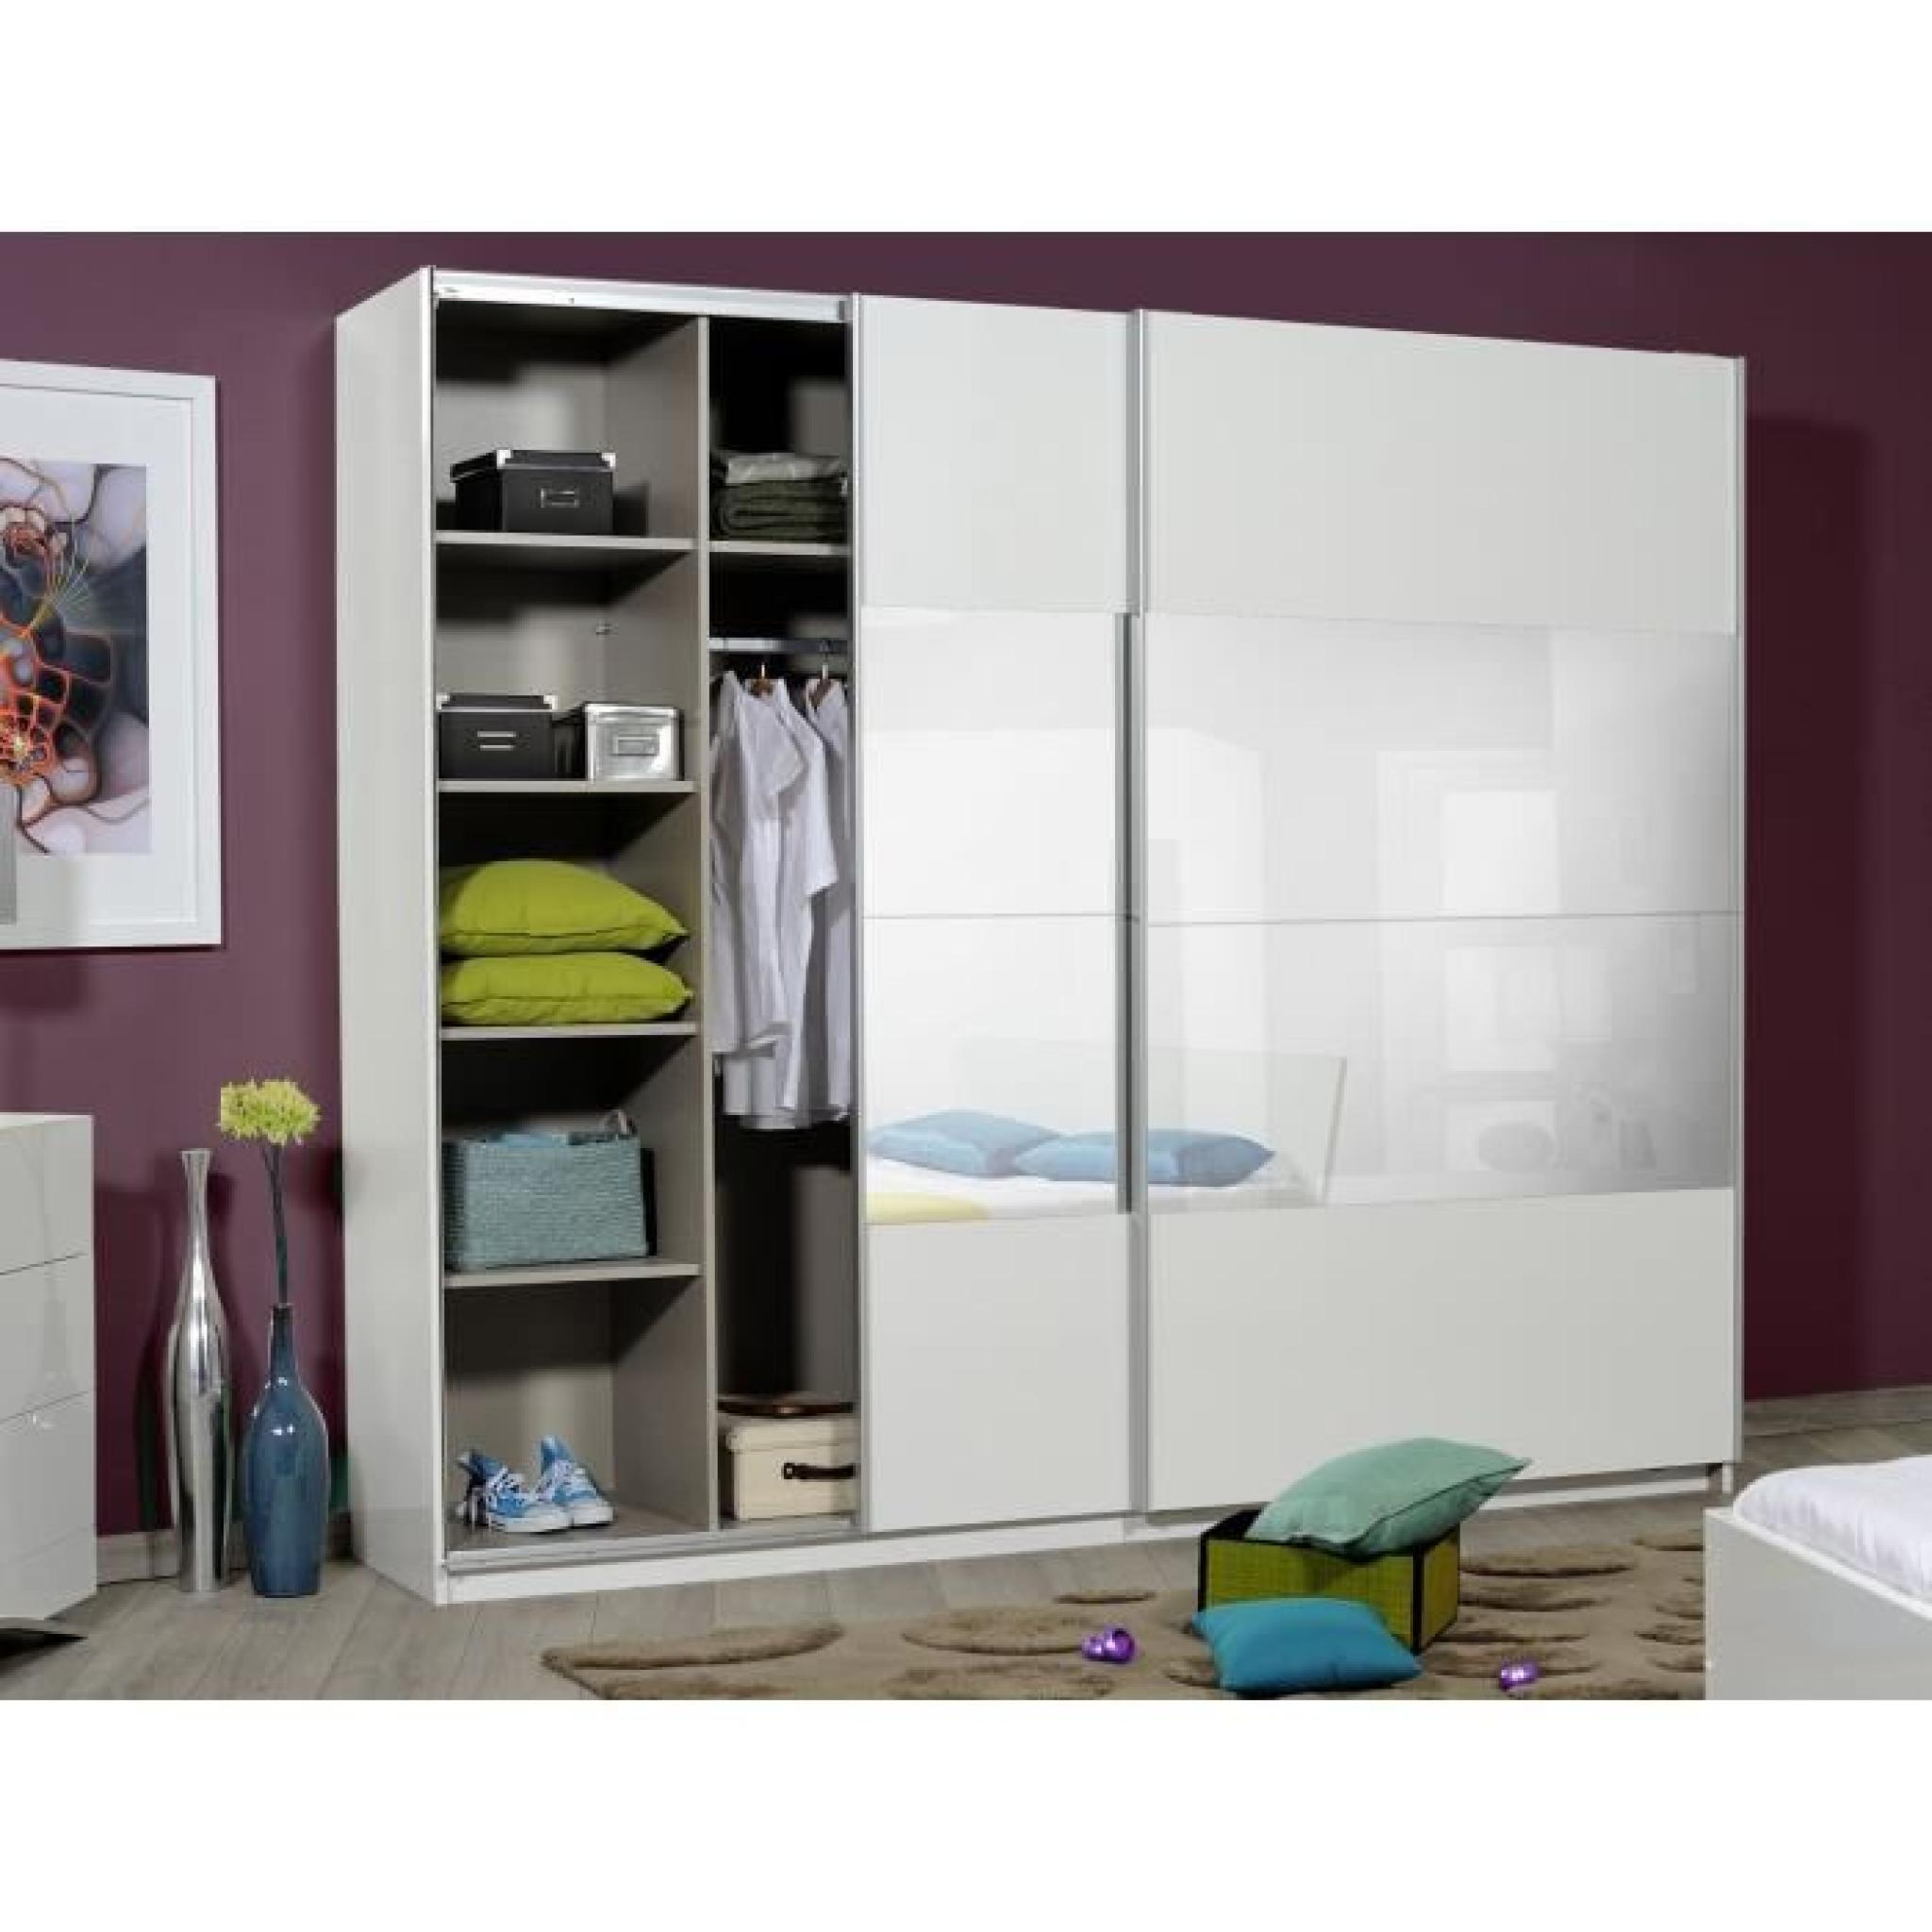 optimus maxi armoire dressing 260 cm blanc achat vente. Black Bedroom Furniture Sets. Home Design Ideas